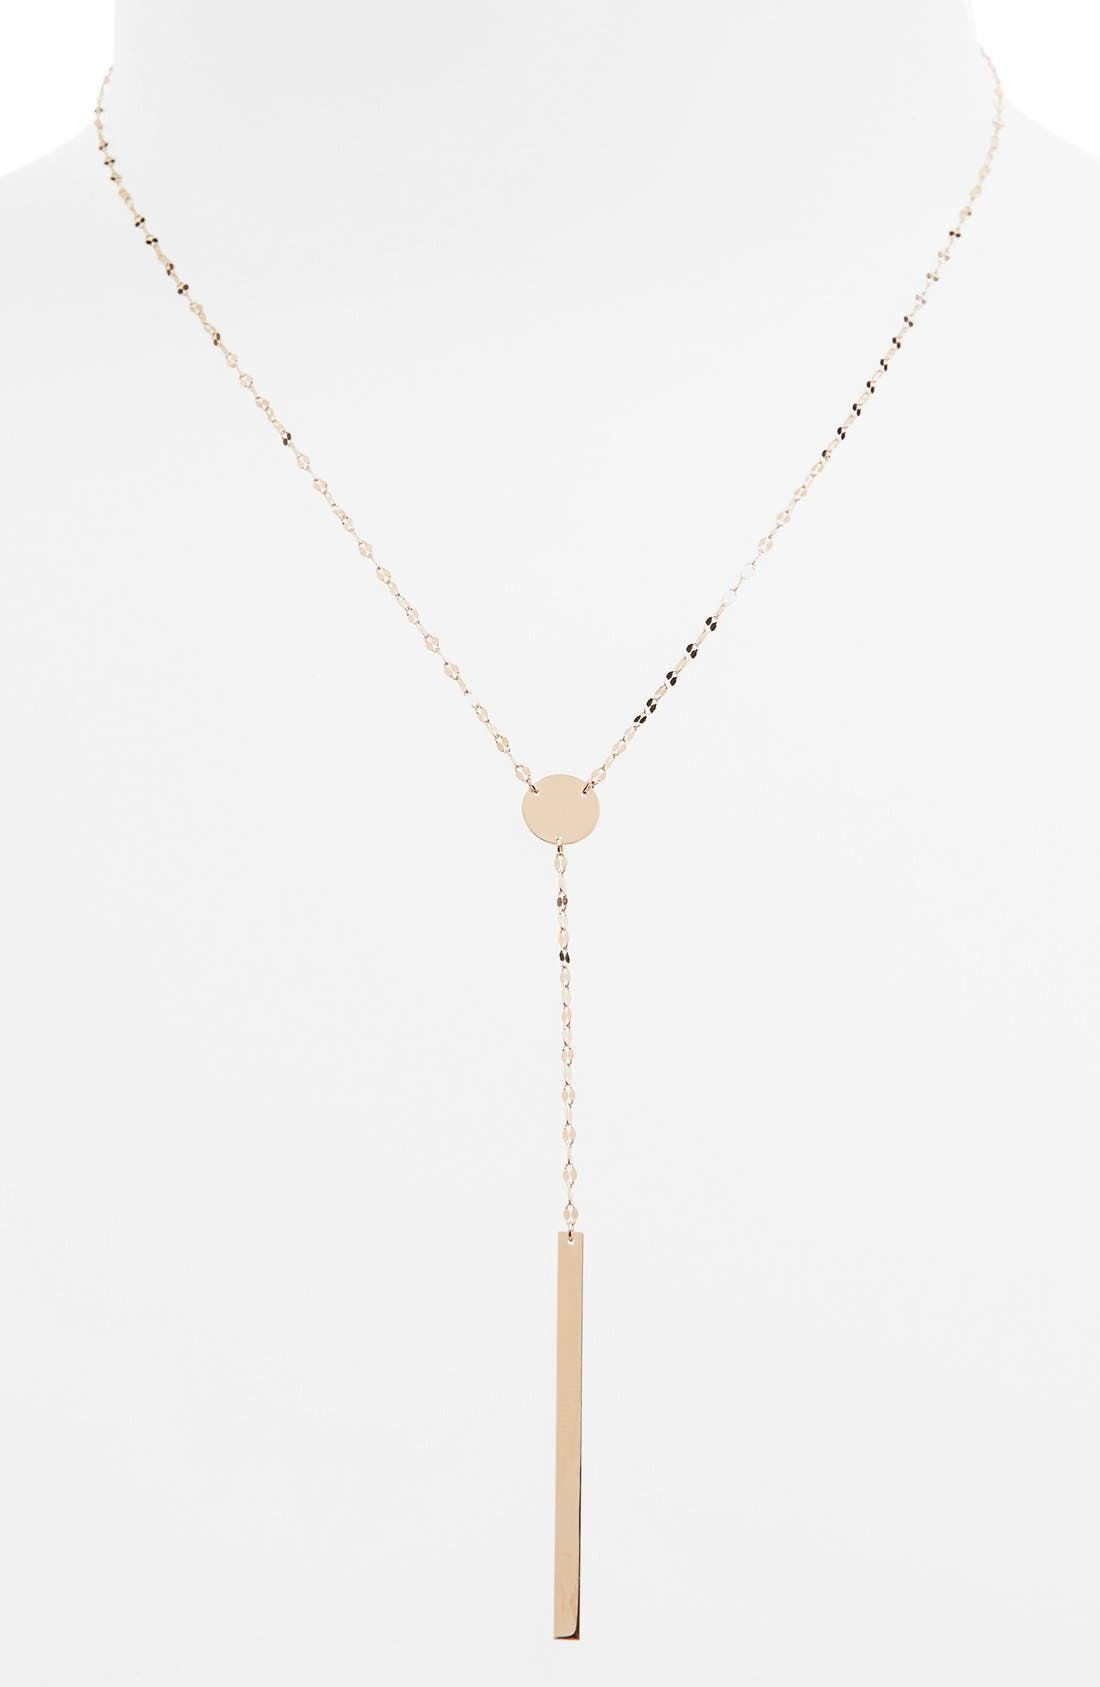 Lana Jewelry 'Chime' Y-Necklace